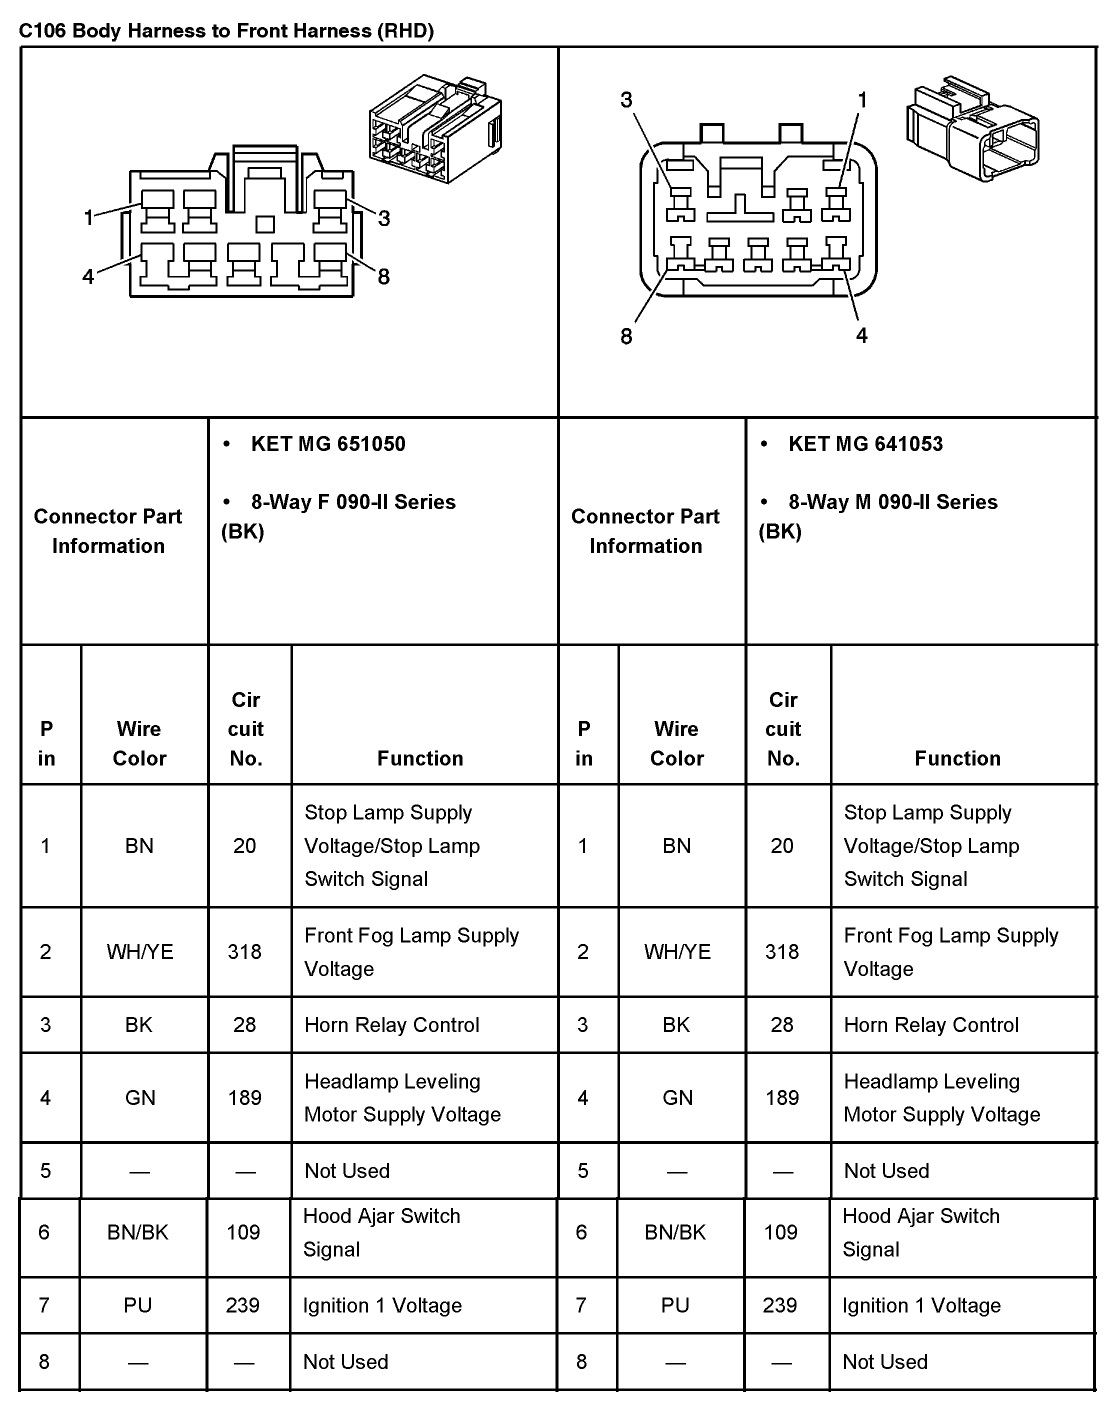 Chevy Aveo Fuse Box Diagram Wiring Library 2011 Impala Repair 2005 Master Connector List And Diagrams Rh Aveoforum Com Chevrolet 2006 Radio